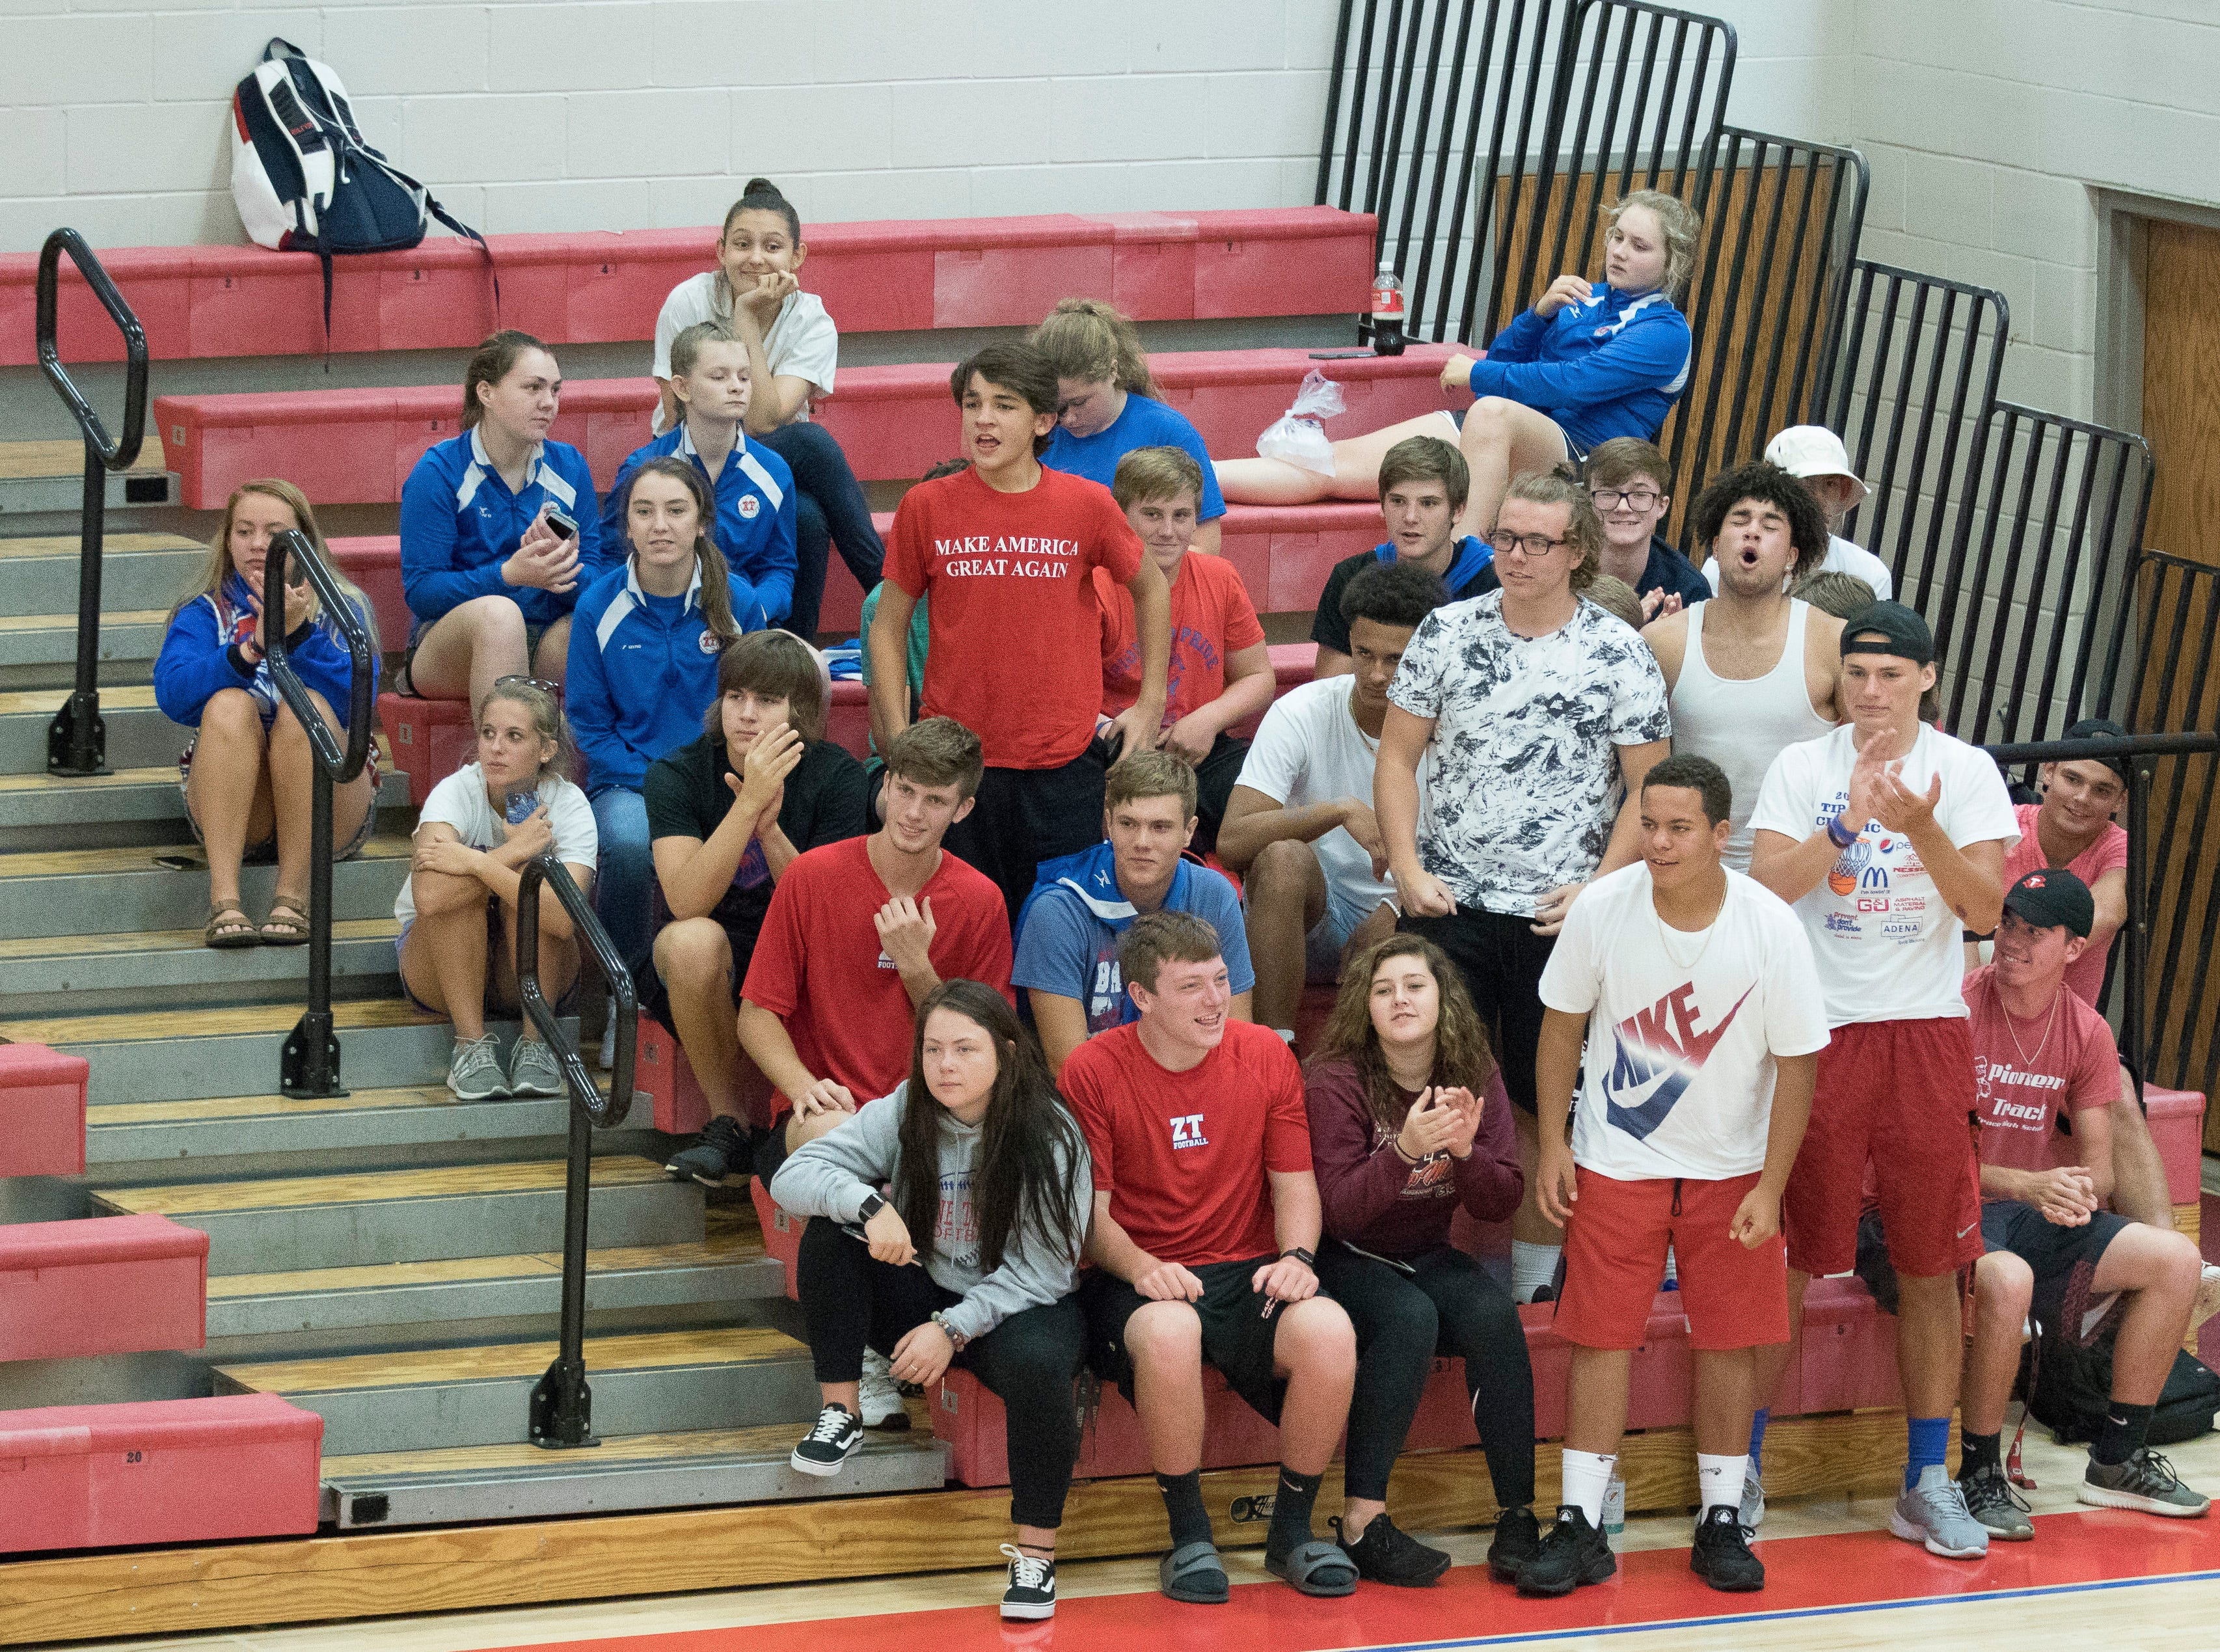 In volleyball, Zane Trace's girls defeated Adena at Zane Trace High School Thursday night 3-0.